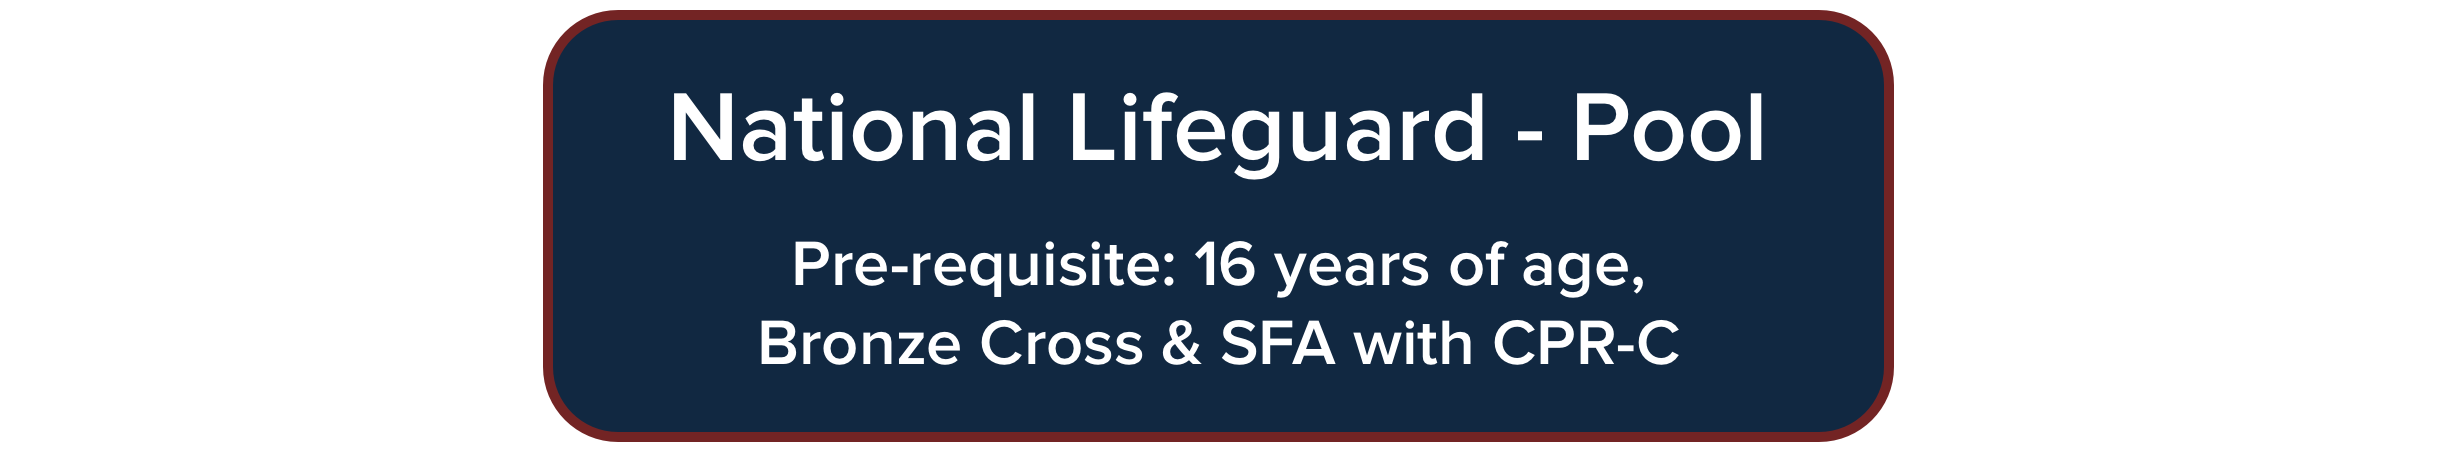 National Lifeguard Course - pre-requisite 16 years of age, Bronze Cross & SFA with CPR-C